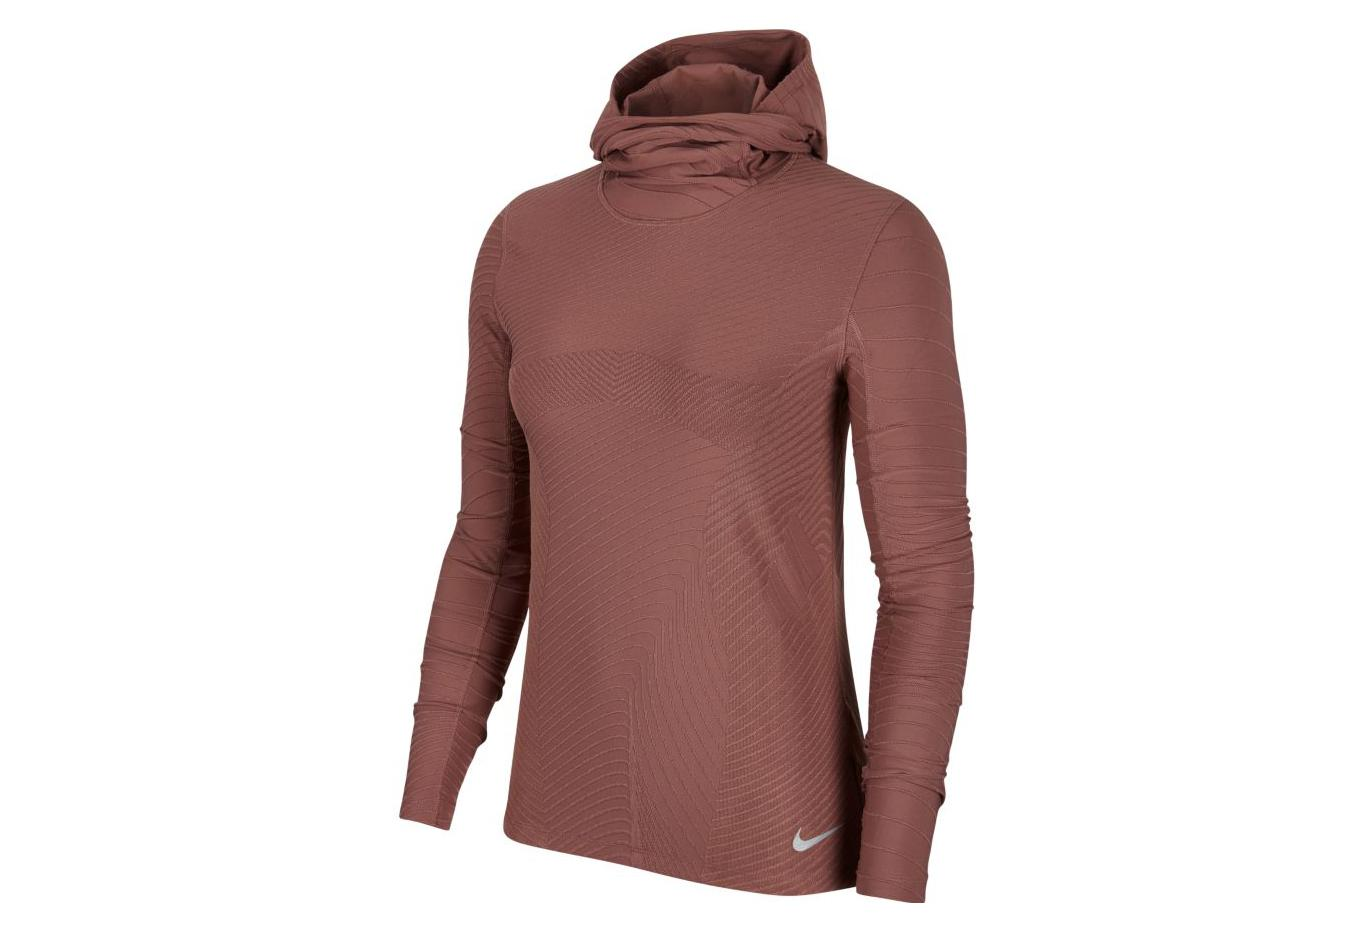 9f74aa7d Nike Element Women's Hooded Long Sleeves Jersey Pink Mauve